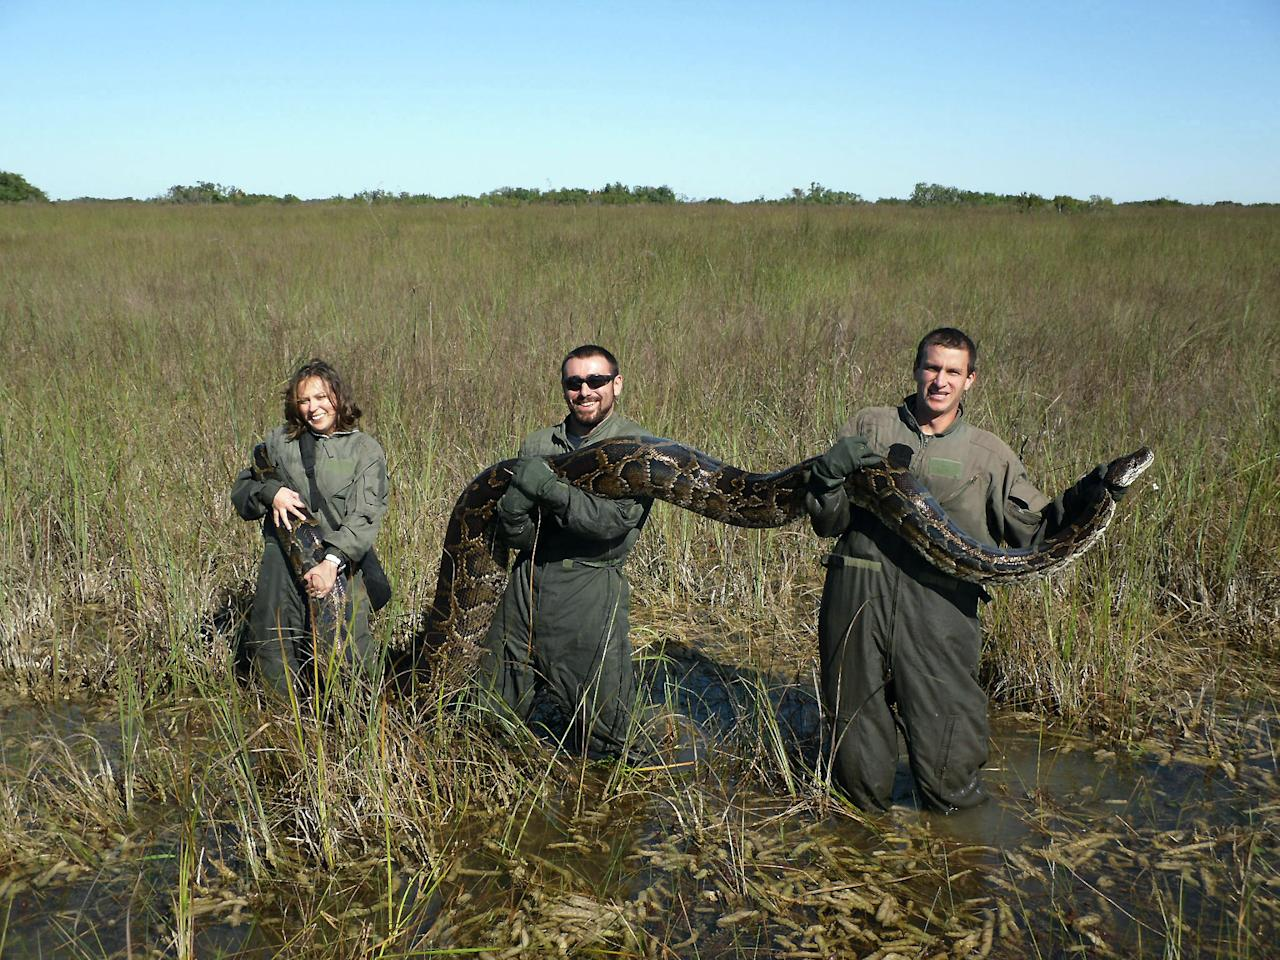 In this November 14, 2009 photo provided by the University of Florida, University of Florida researchers hold a 162-pound Burmese python captured in Everglades National Park, Fla. Therese Walters, left, Alex Wolf and Michael R. Rochford, right, are holding the 15-foot snake shortly after the python ate a six-foot American alligator. The National Academy of Science report released Monday, Jan. 30, 2012, indicates that the proliferation of pythons coincides with a sharp decrease of mammals in the park. (AP Photo/ University of Florida, Michael R. Rochford)